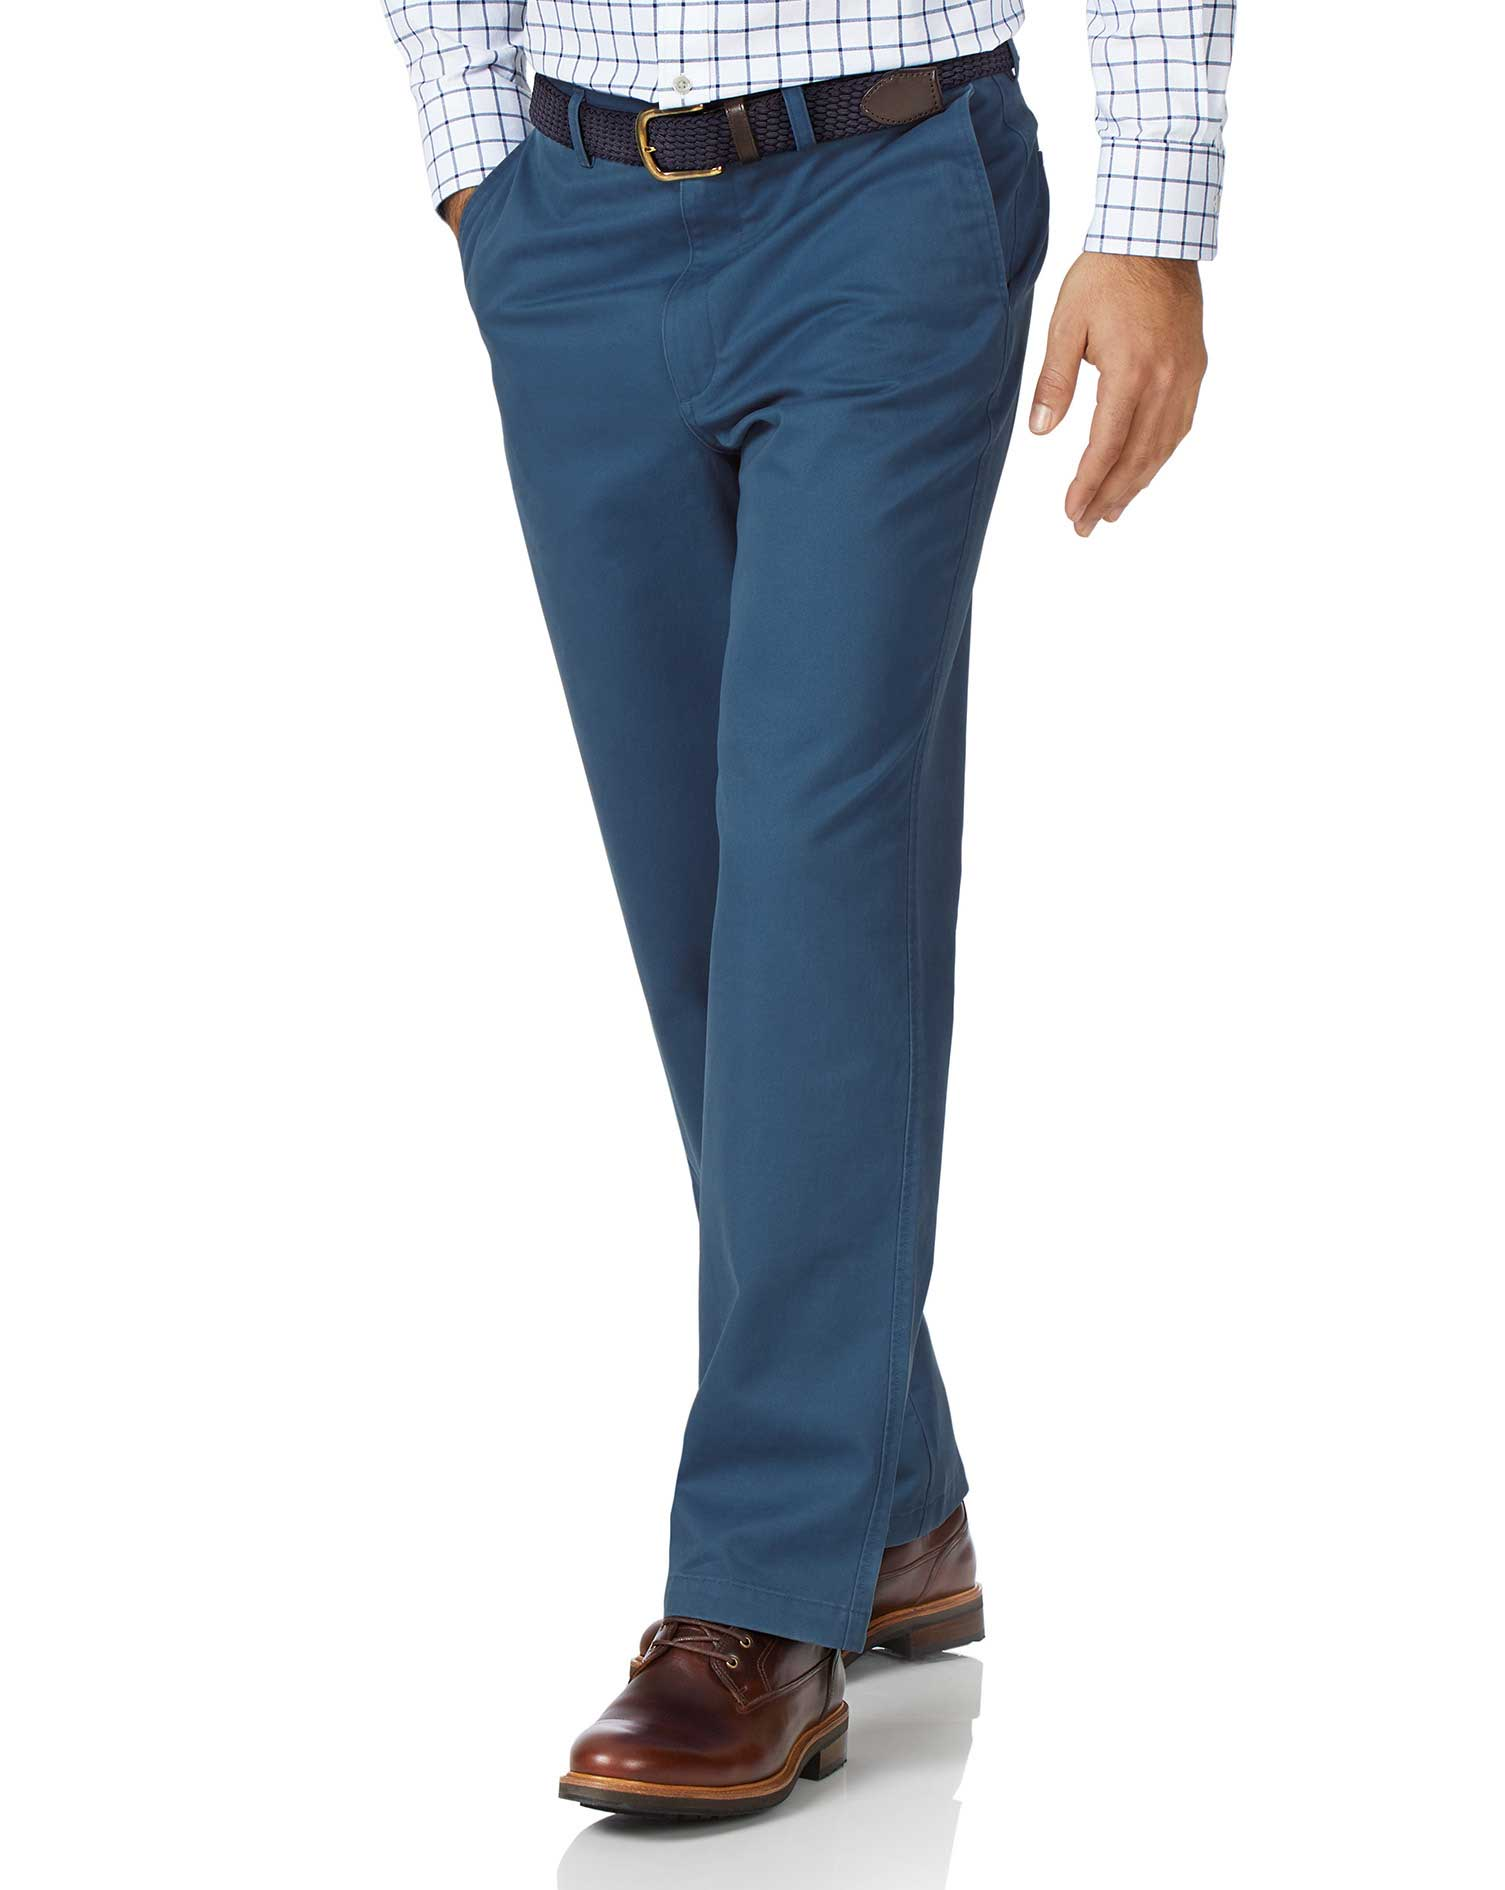 Bright Blue Classic Fit Flat Front Washed Cotton Chino Trousers Size W40 L38 by Charles Tyrwhitt